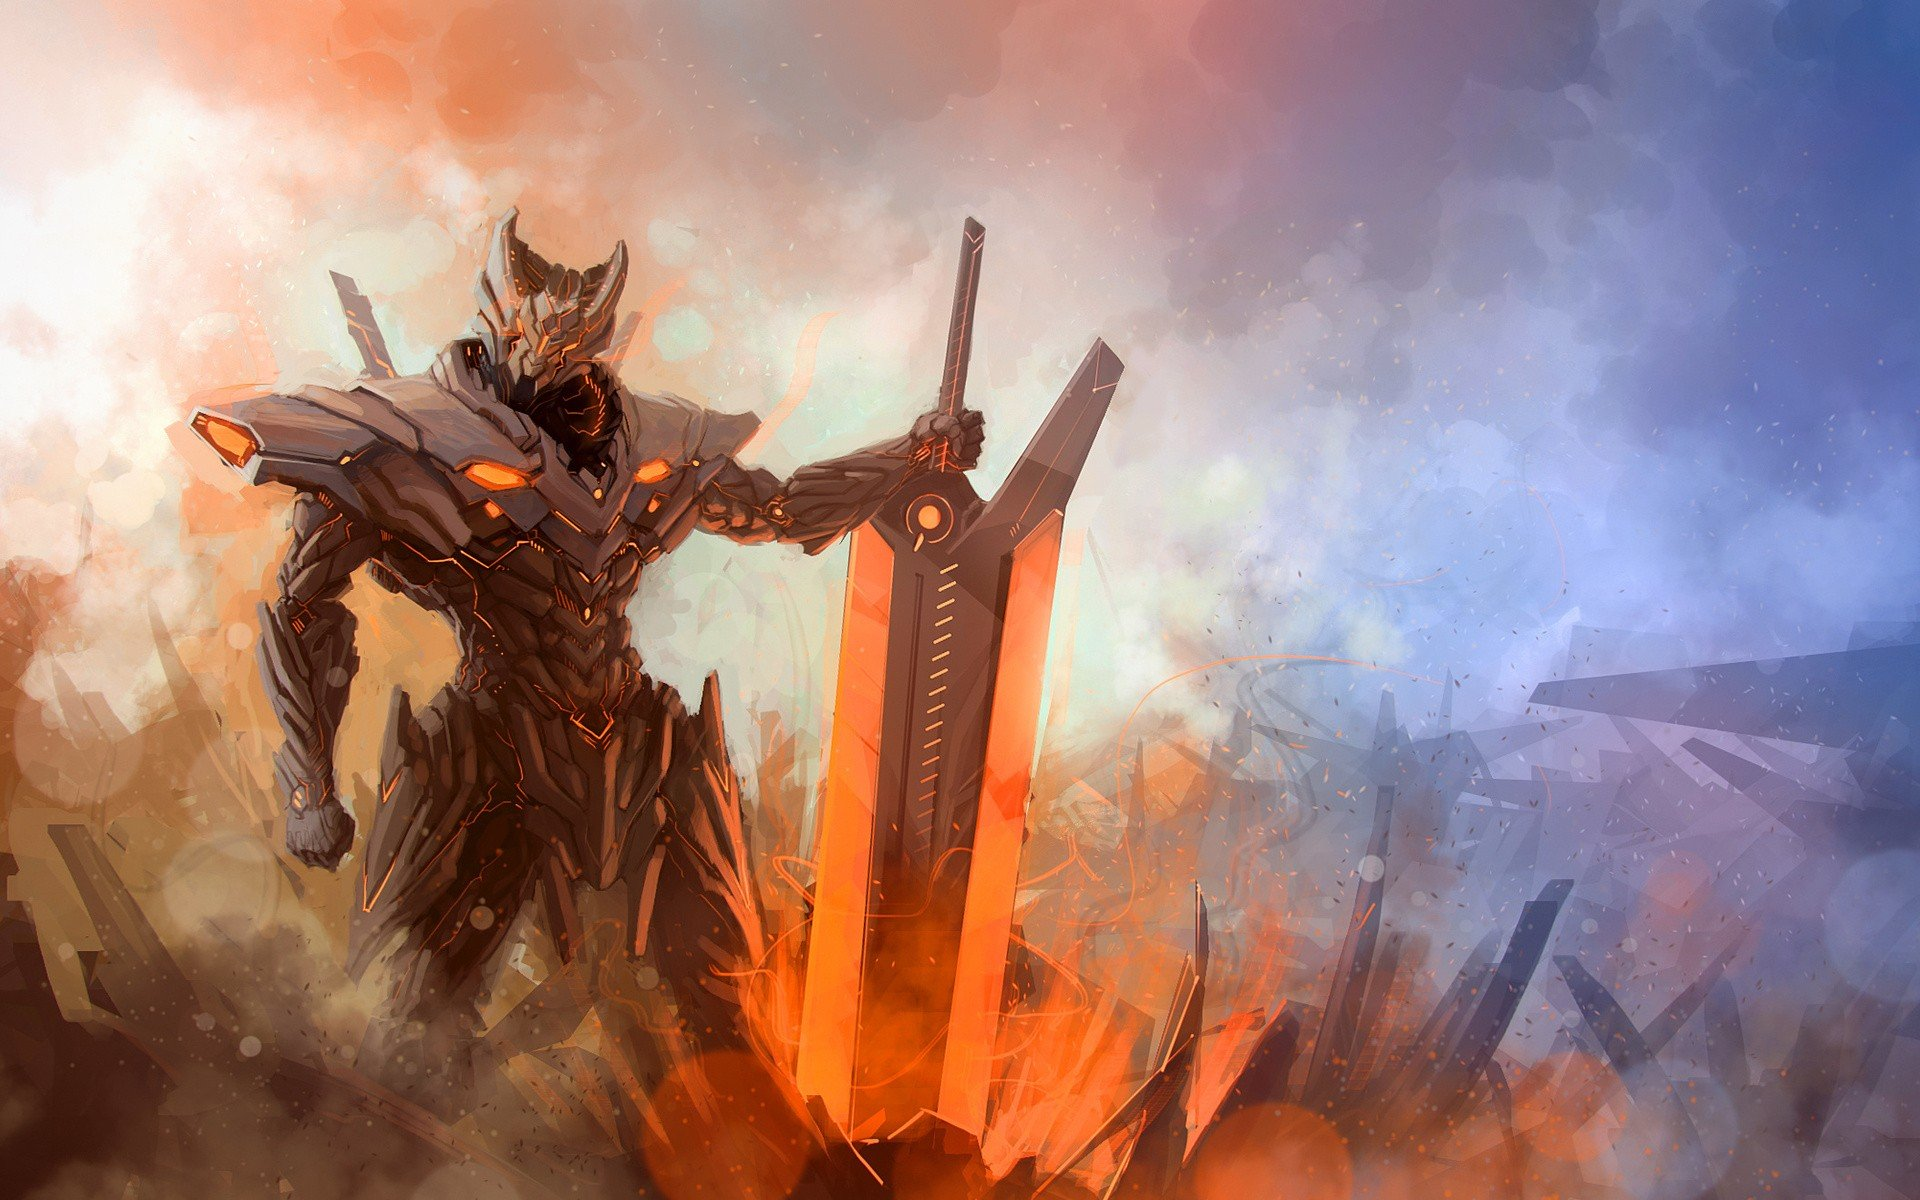 Download hd 1920x1200 Warrior desktop wallpaper ID:196398 for free